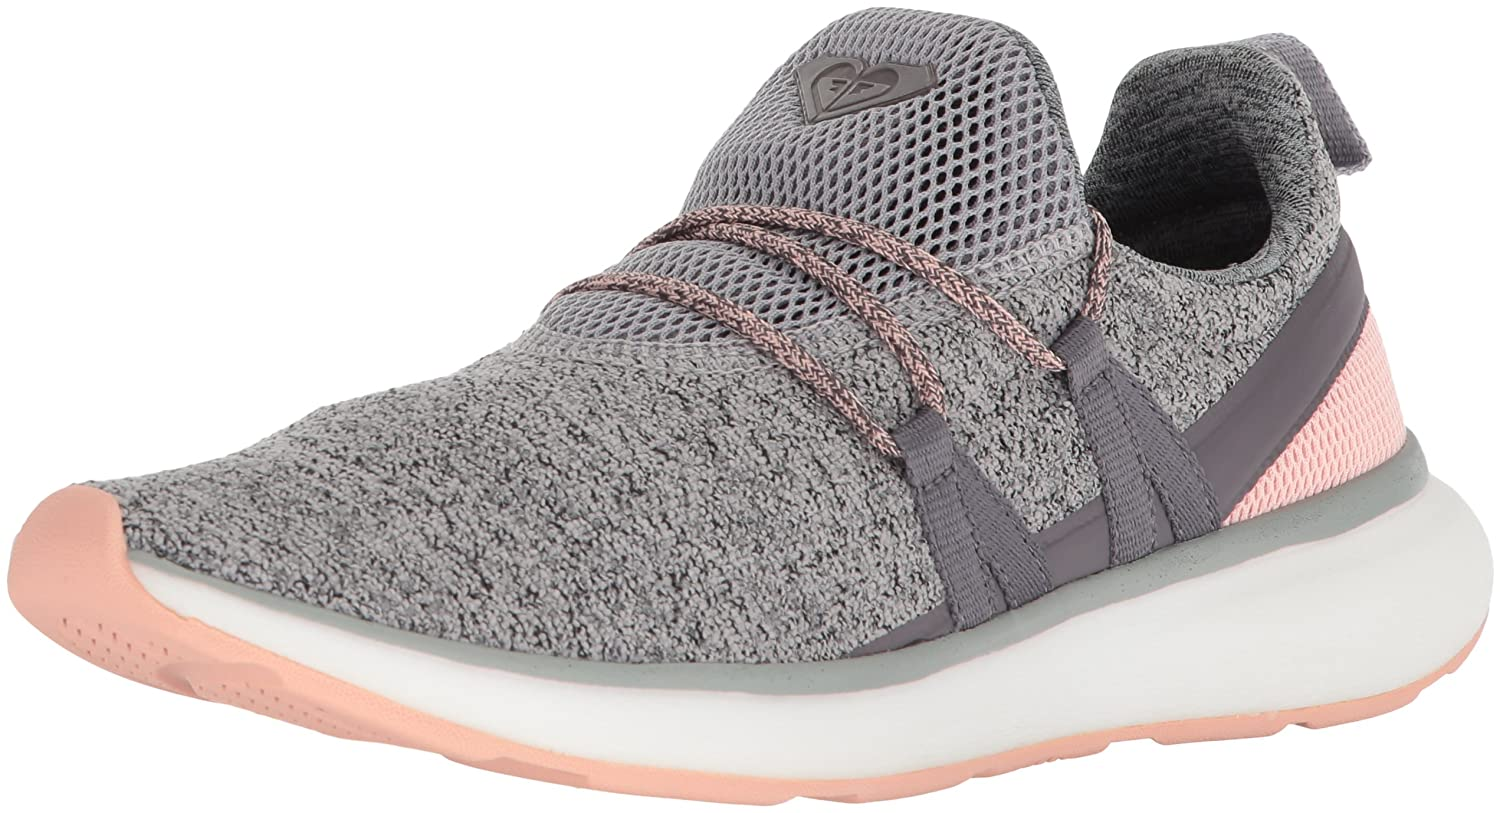 Roxy Women's Set Seeker Athletic Running Shoe B071KCQ8JN 7.5 B(M) US|Heather Grey